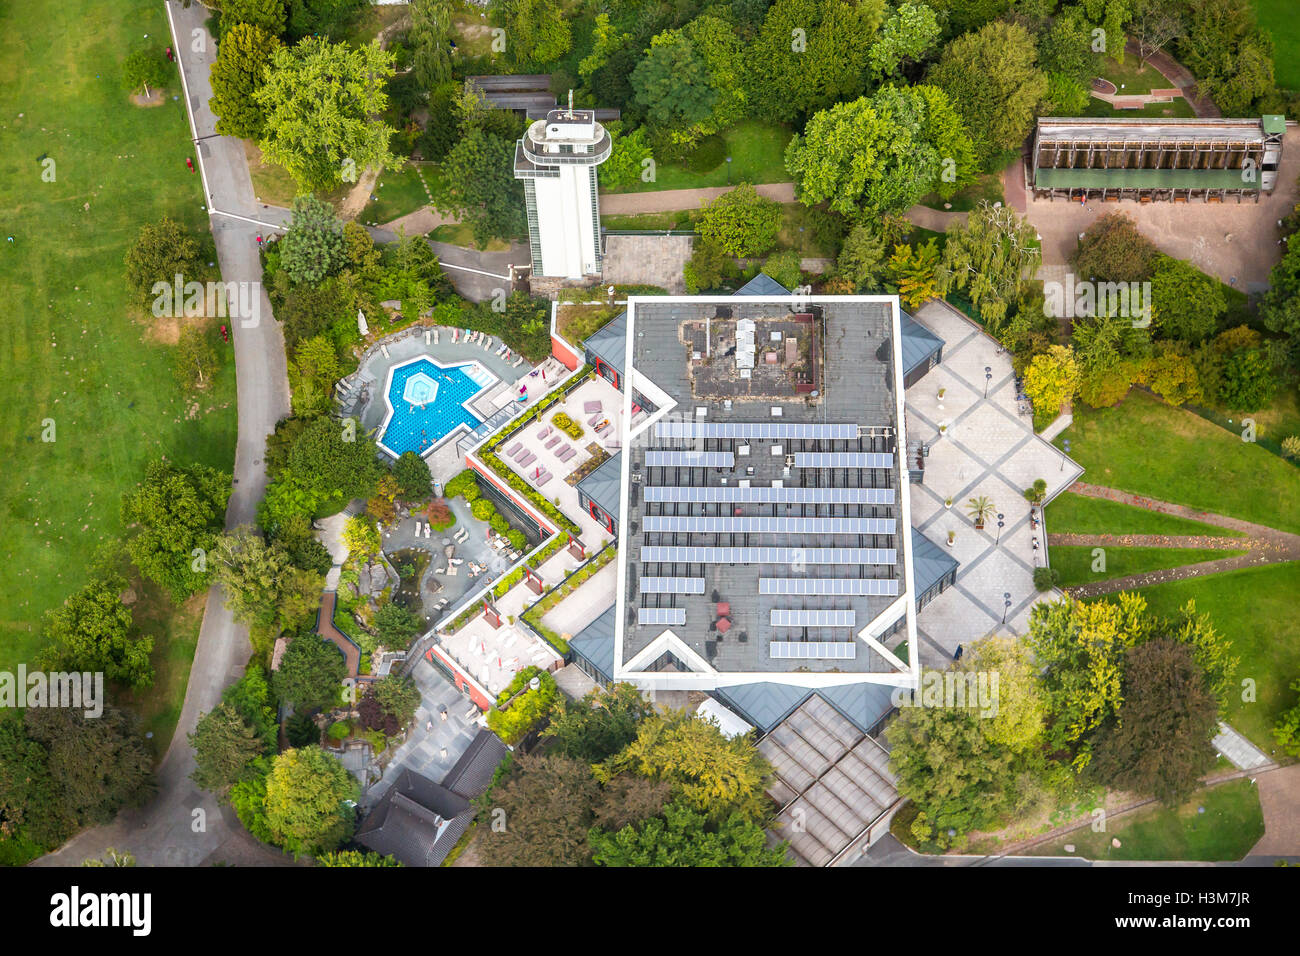 Areal view of the Gruga Therme, a wellness, spa with pools, sauna, in the Gruga Park, Essen, Germany, - Stock Image